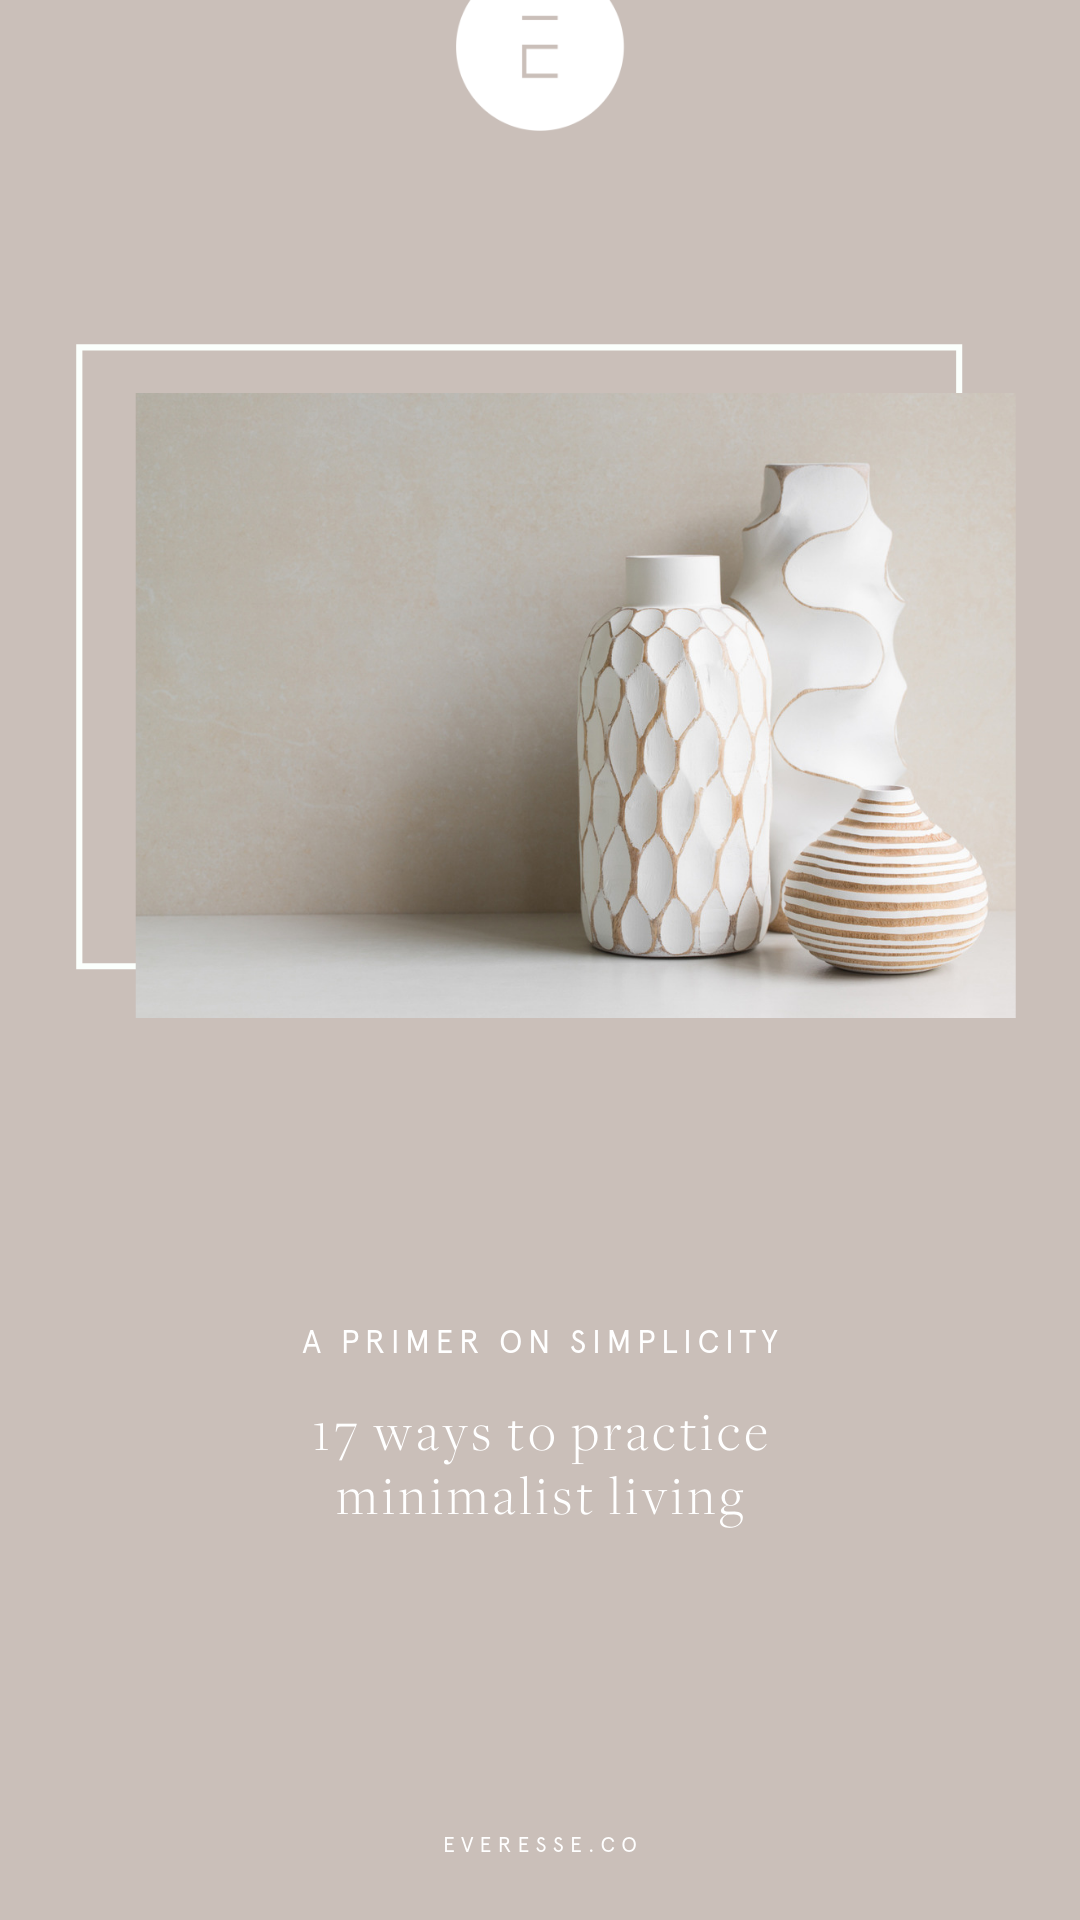 A primer on simplicity: 17 ways to practice minimalist living 2.png